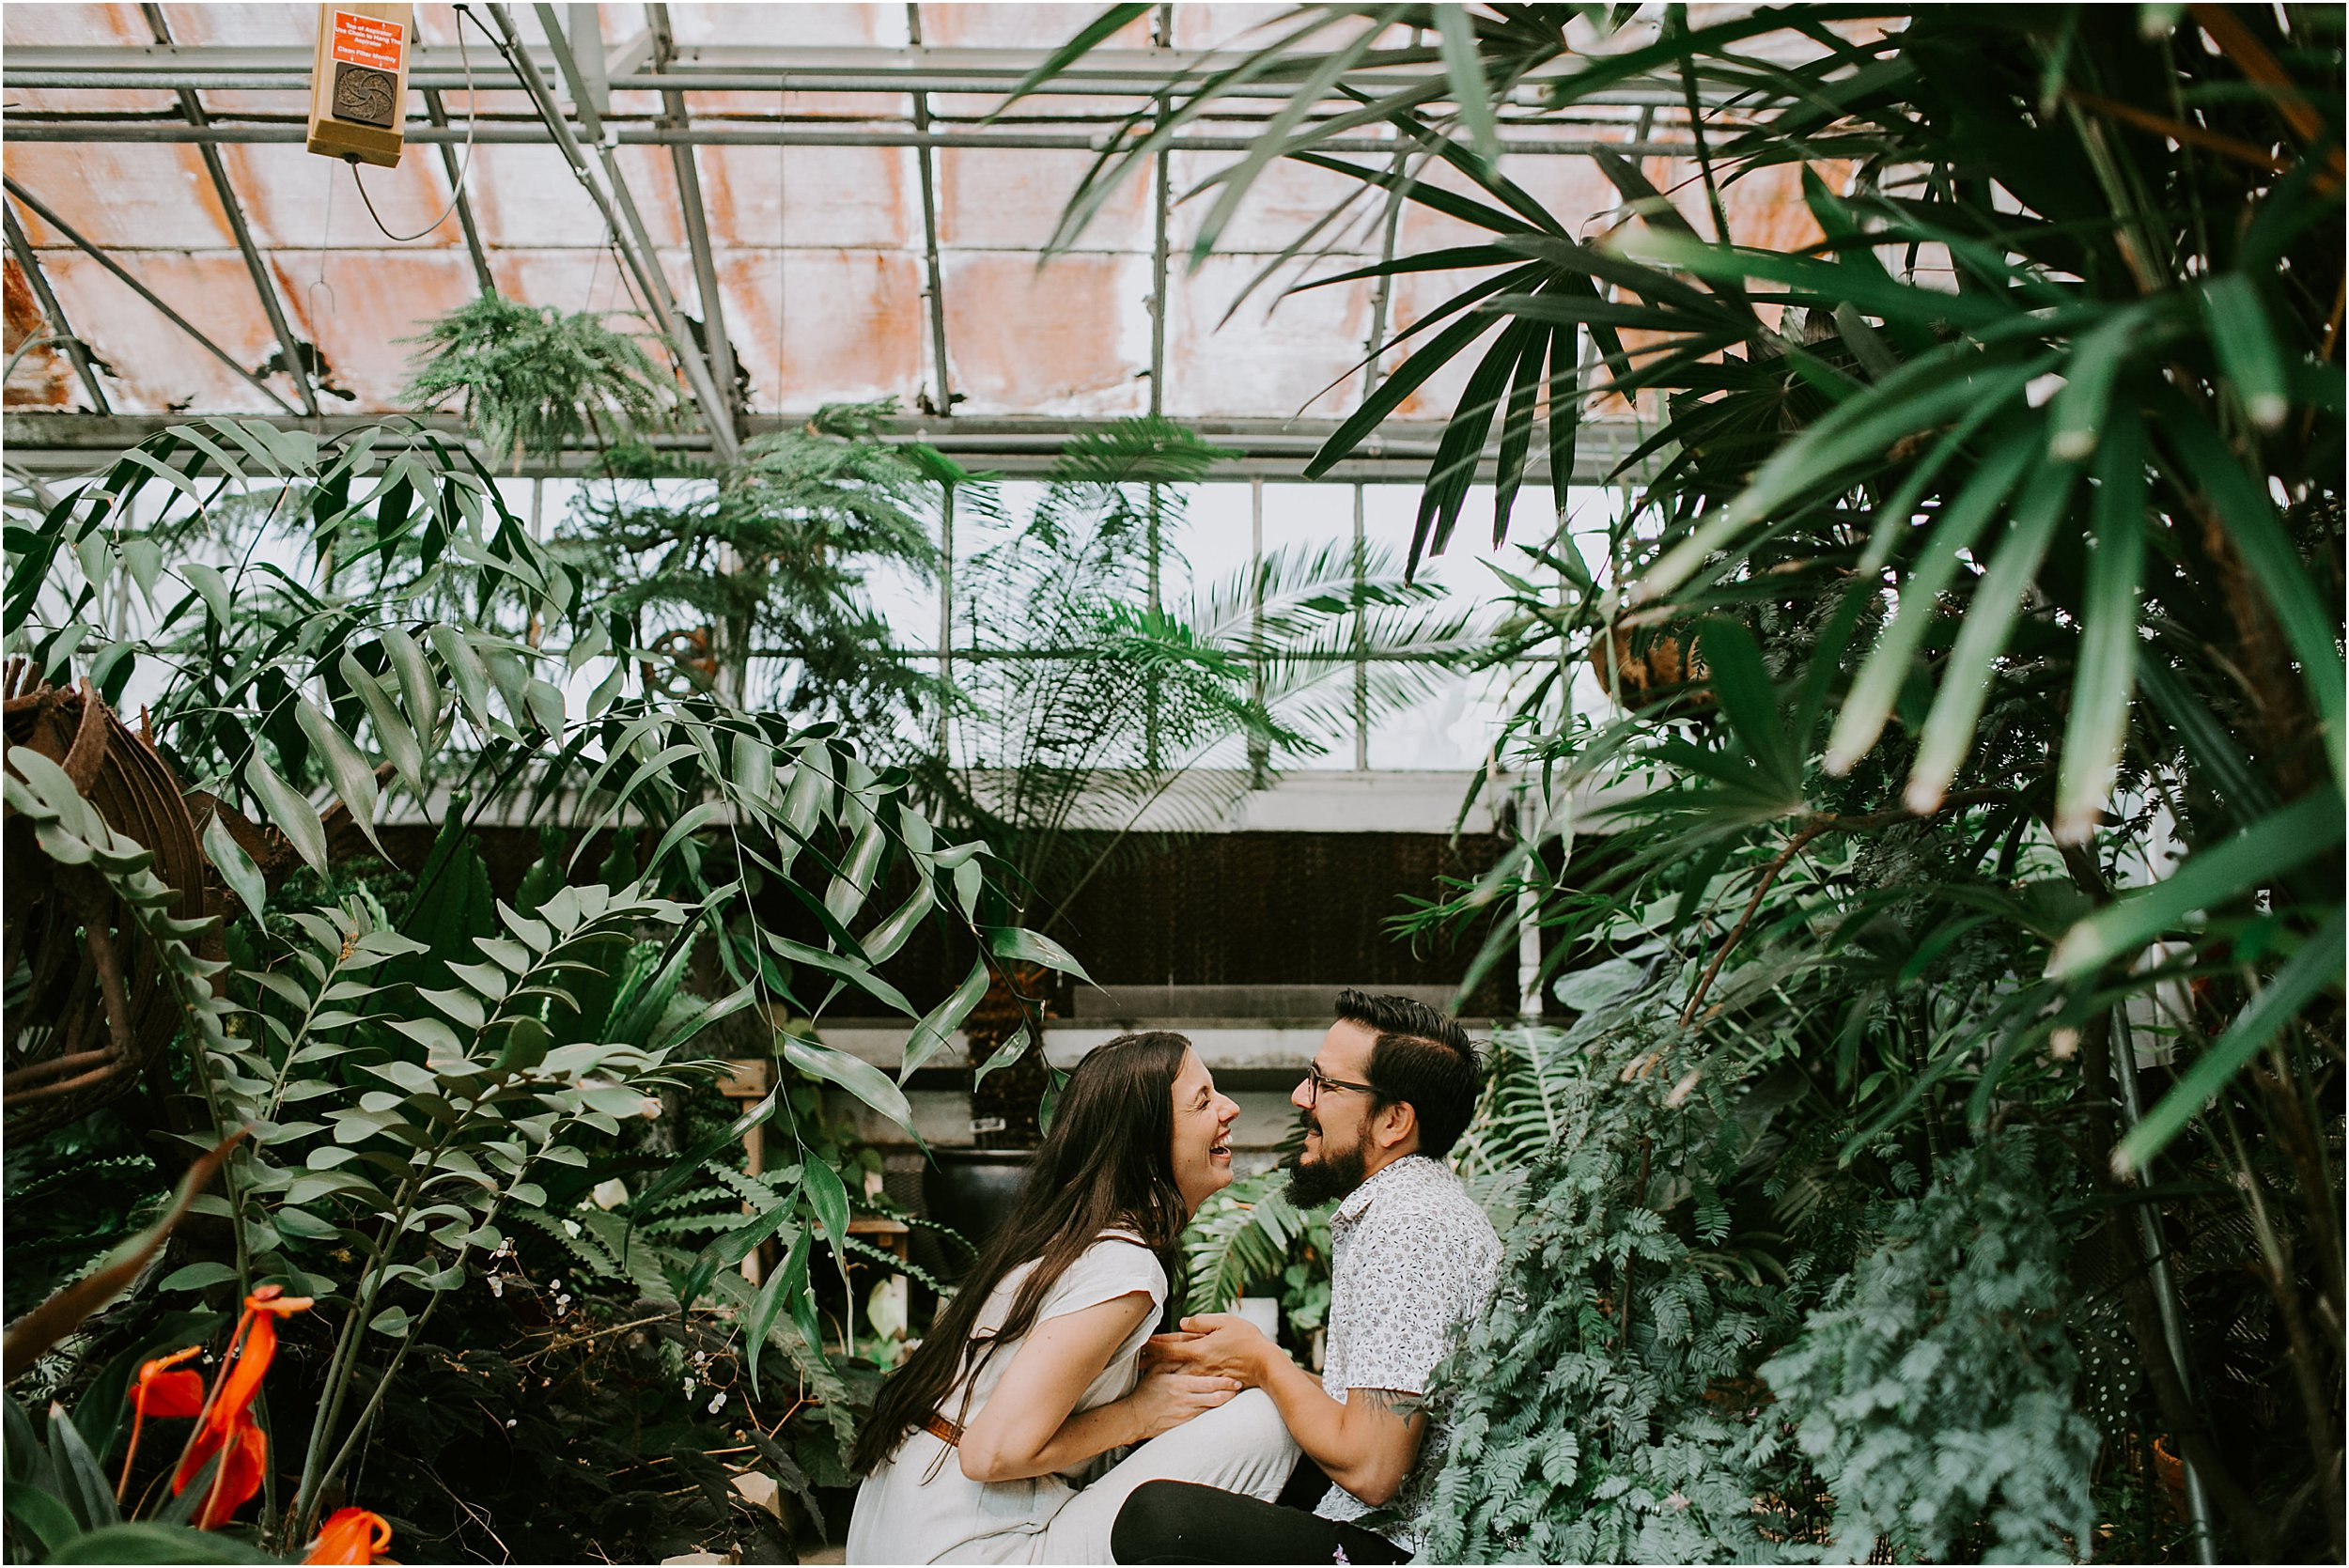 A couple is sitting on the ground in a greenhouse, facing each other. They are holding hands and the girl is laughing. There are tall green plants and a red flower.